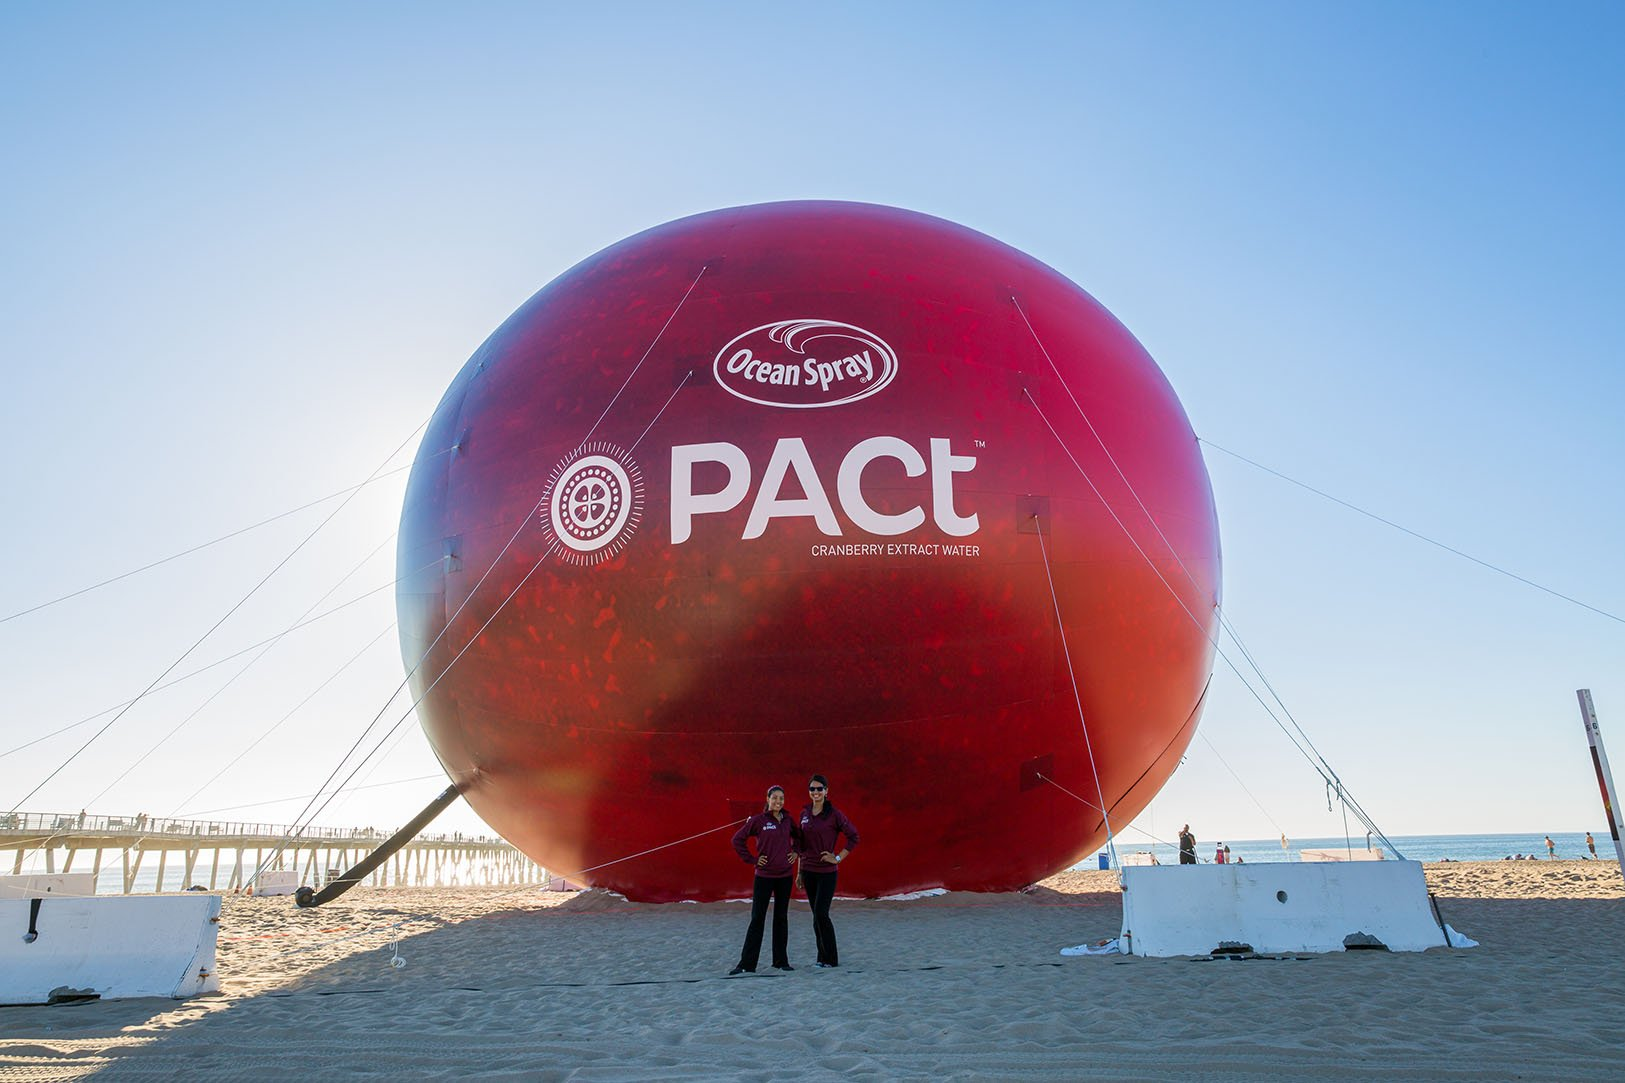 60-foot-pact-cranberry